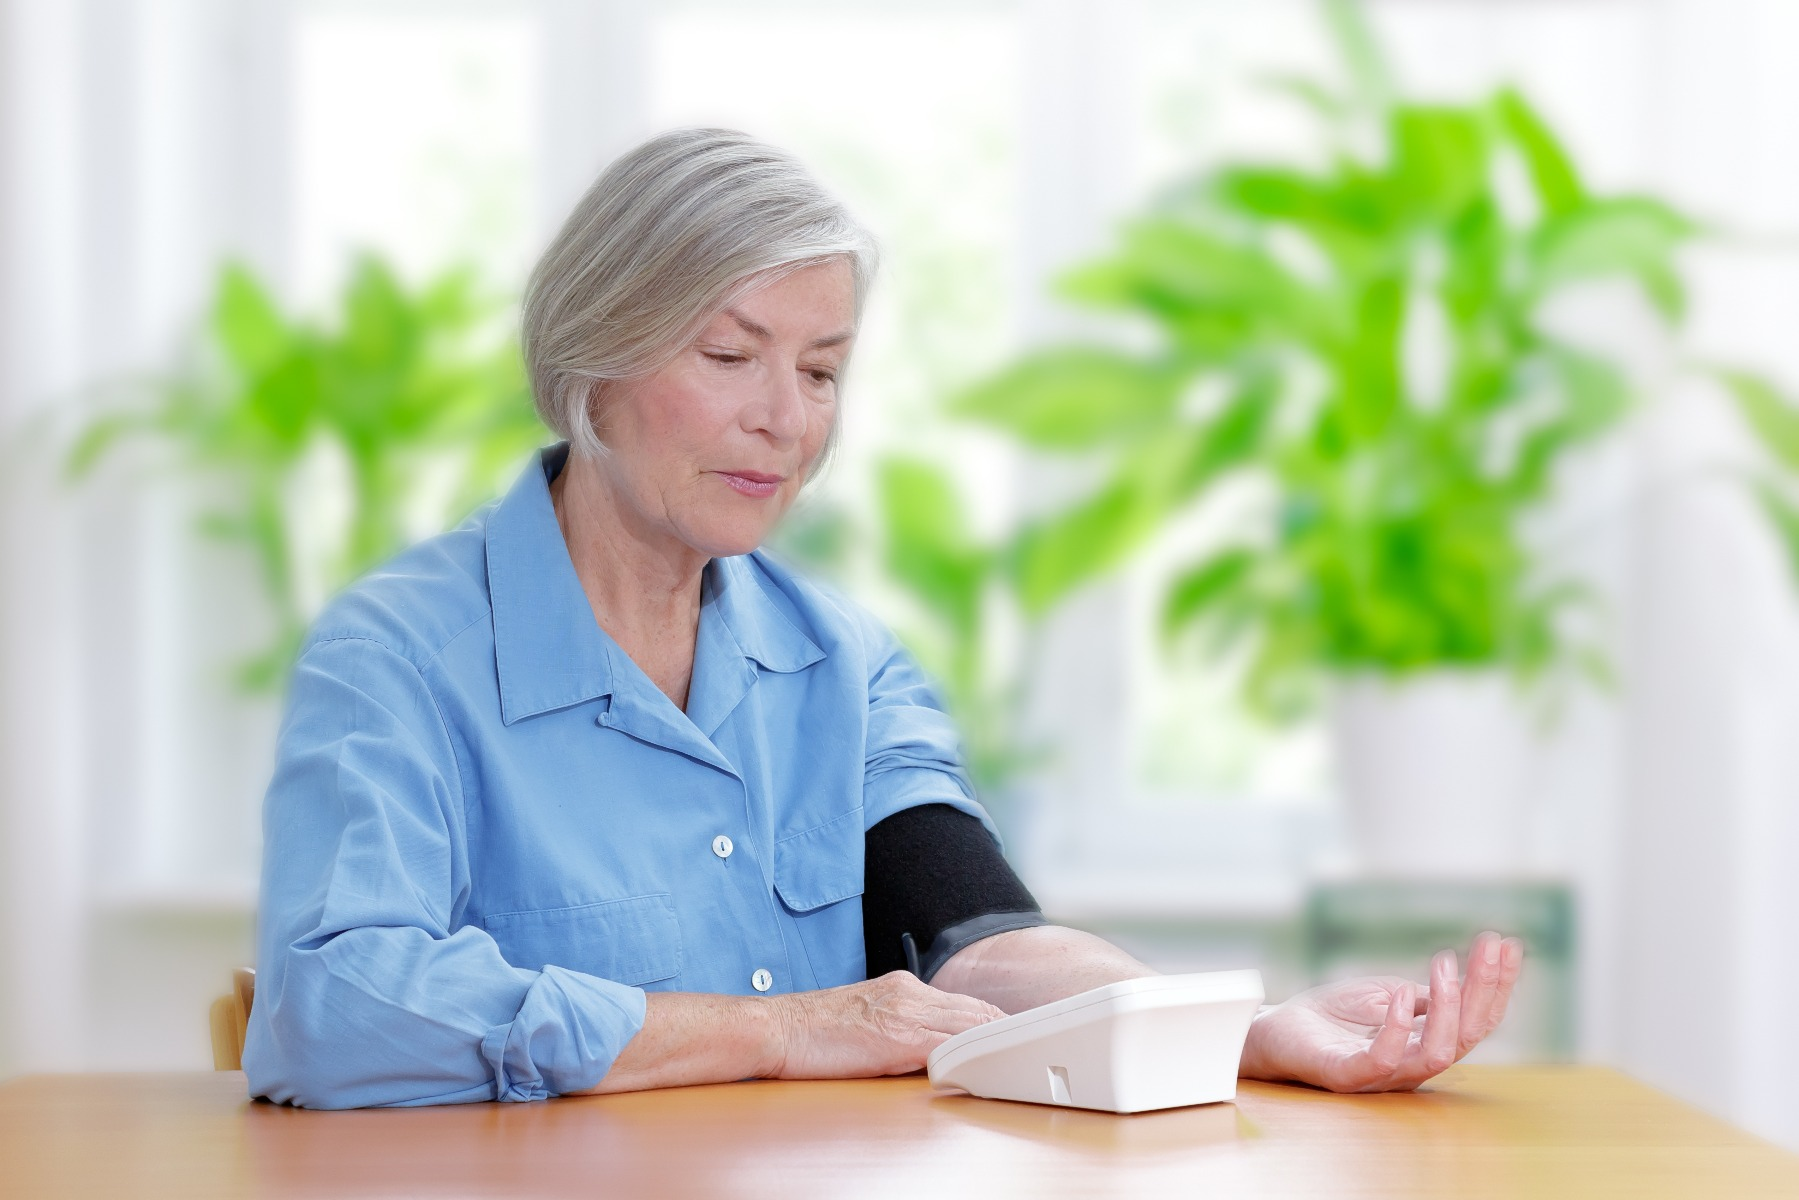 Senior woman sitting at table using a blood pressure monitor